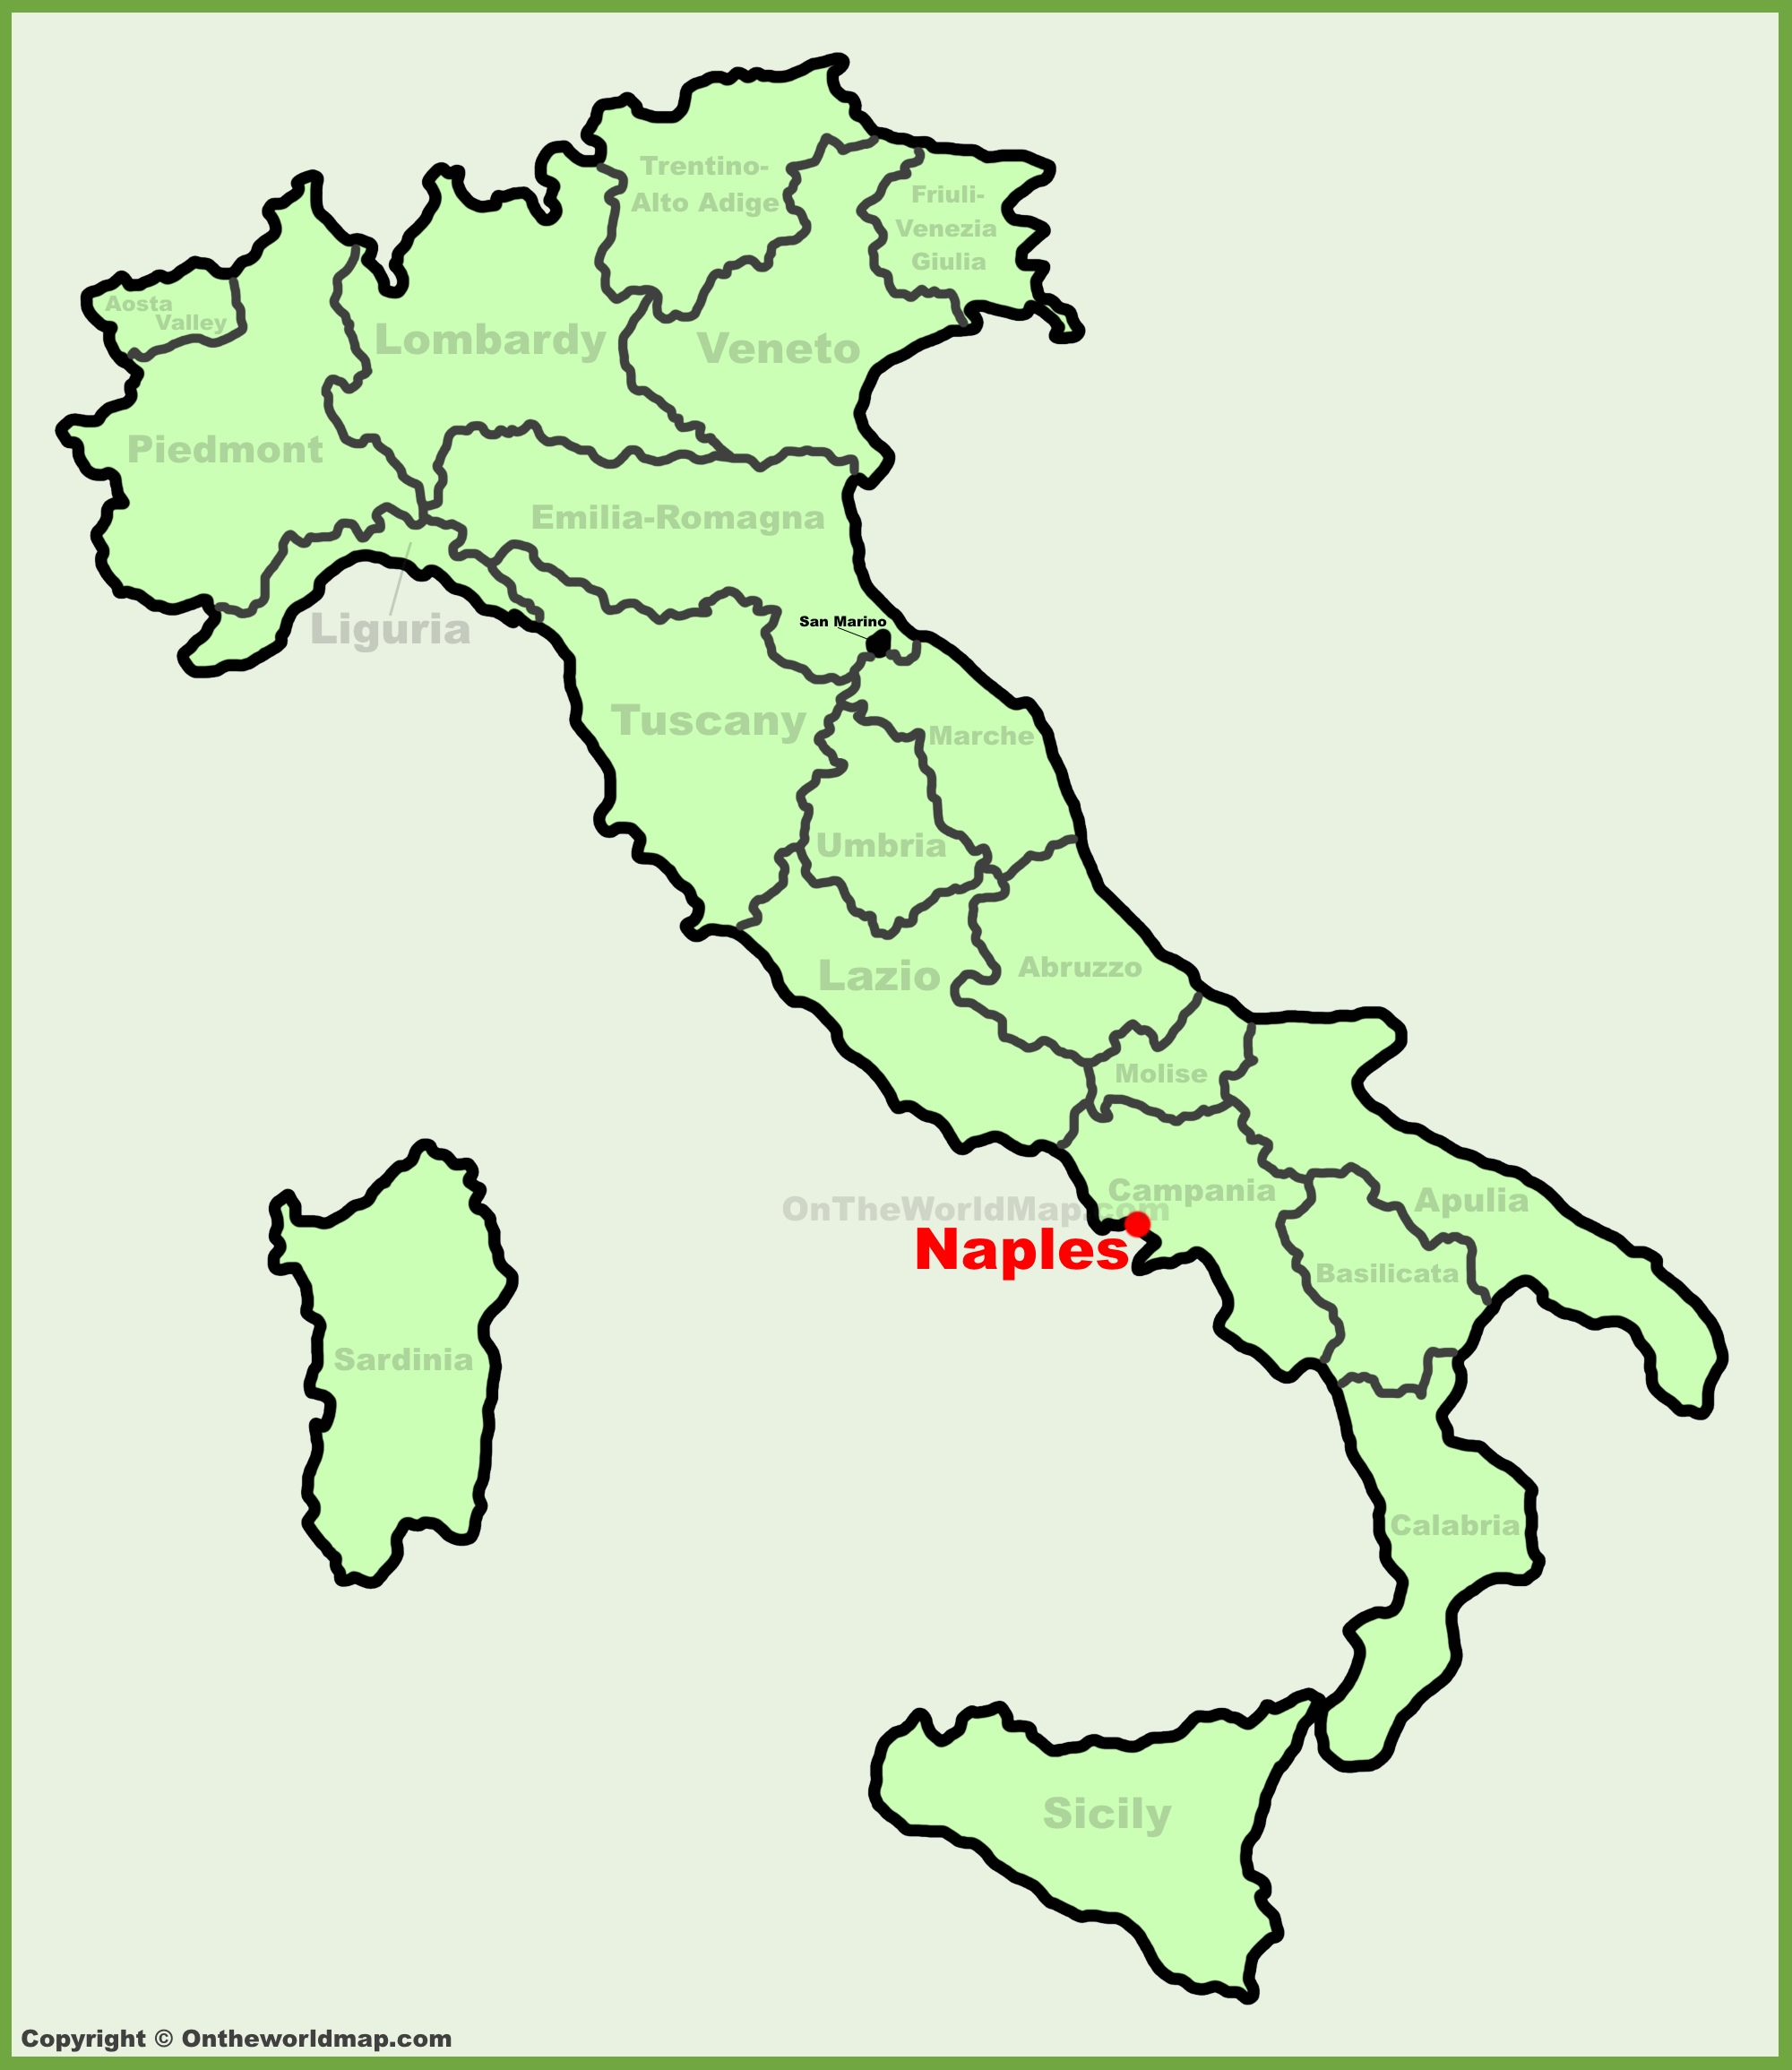 Naples Italy Map Naples location on the Italy map Naples Italy Map